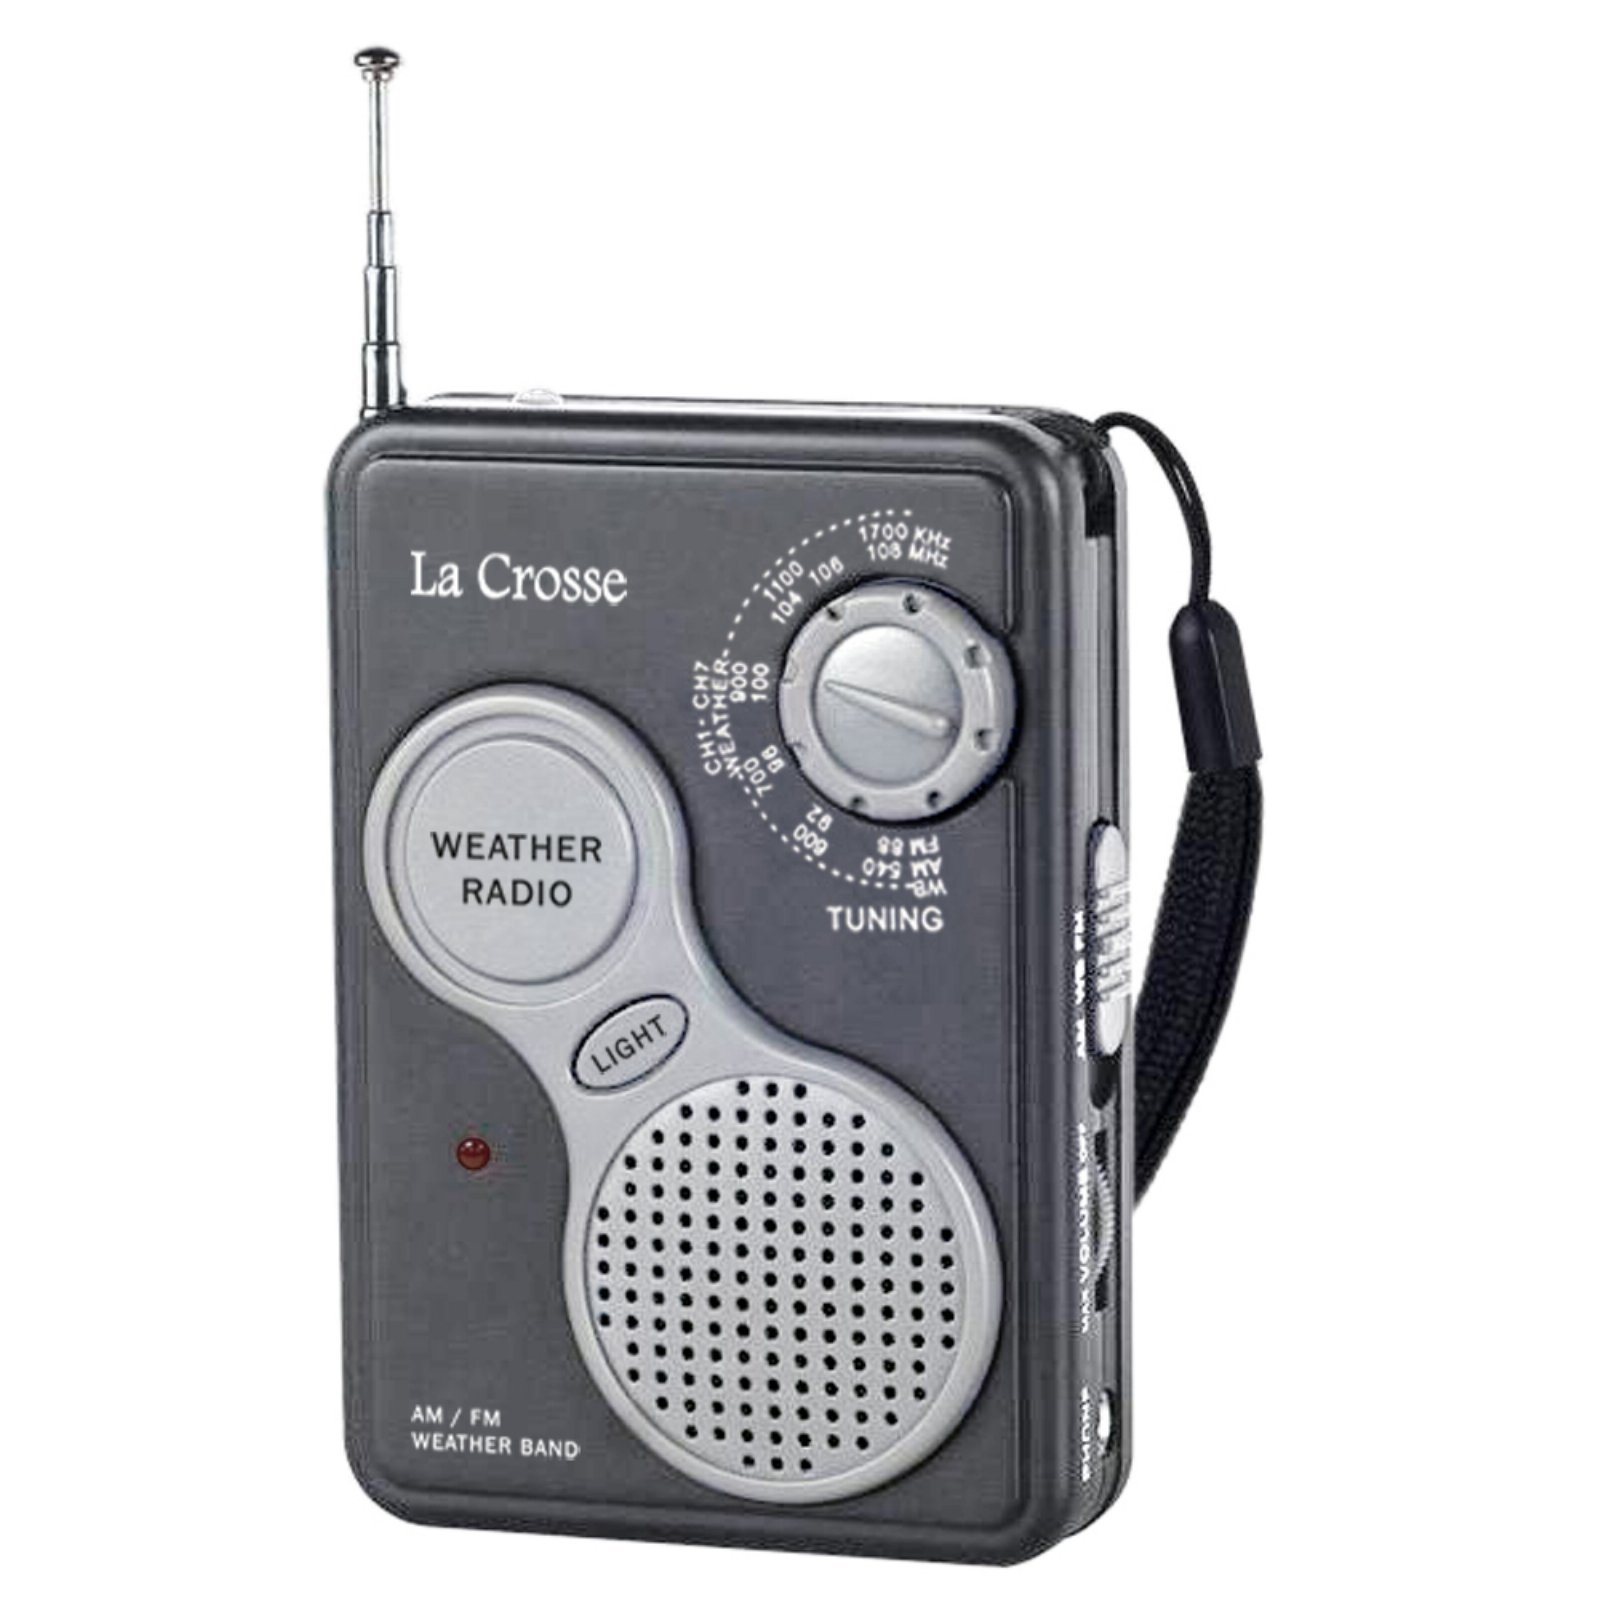 La Crosse 809-905 AM/FM Handheld NOAA Weather Radio